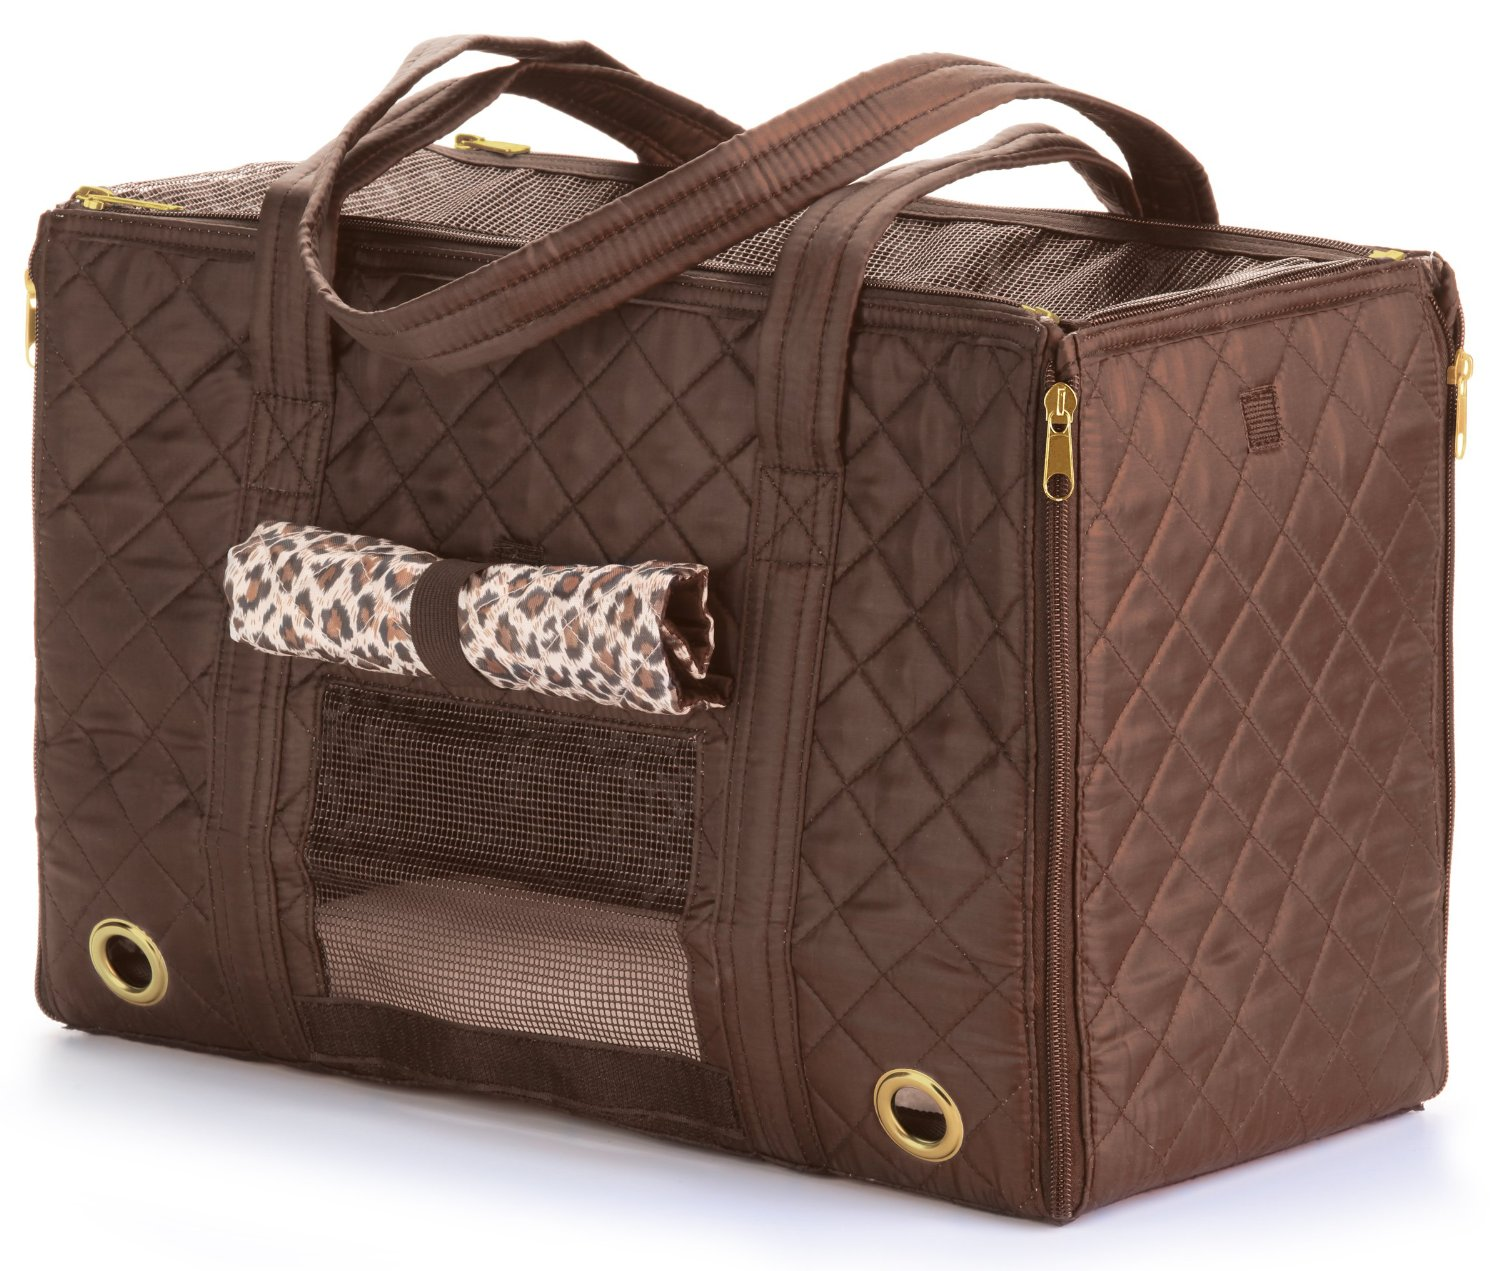 Sherpa Park Tote Pet Carrier, Small Brown by Quaker Pet Group